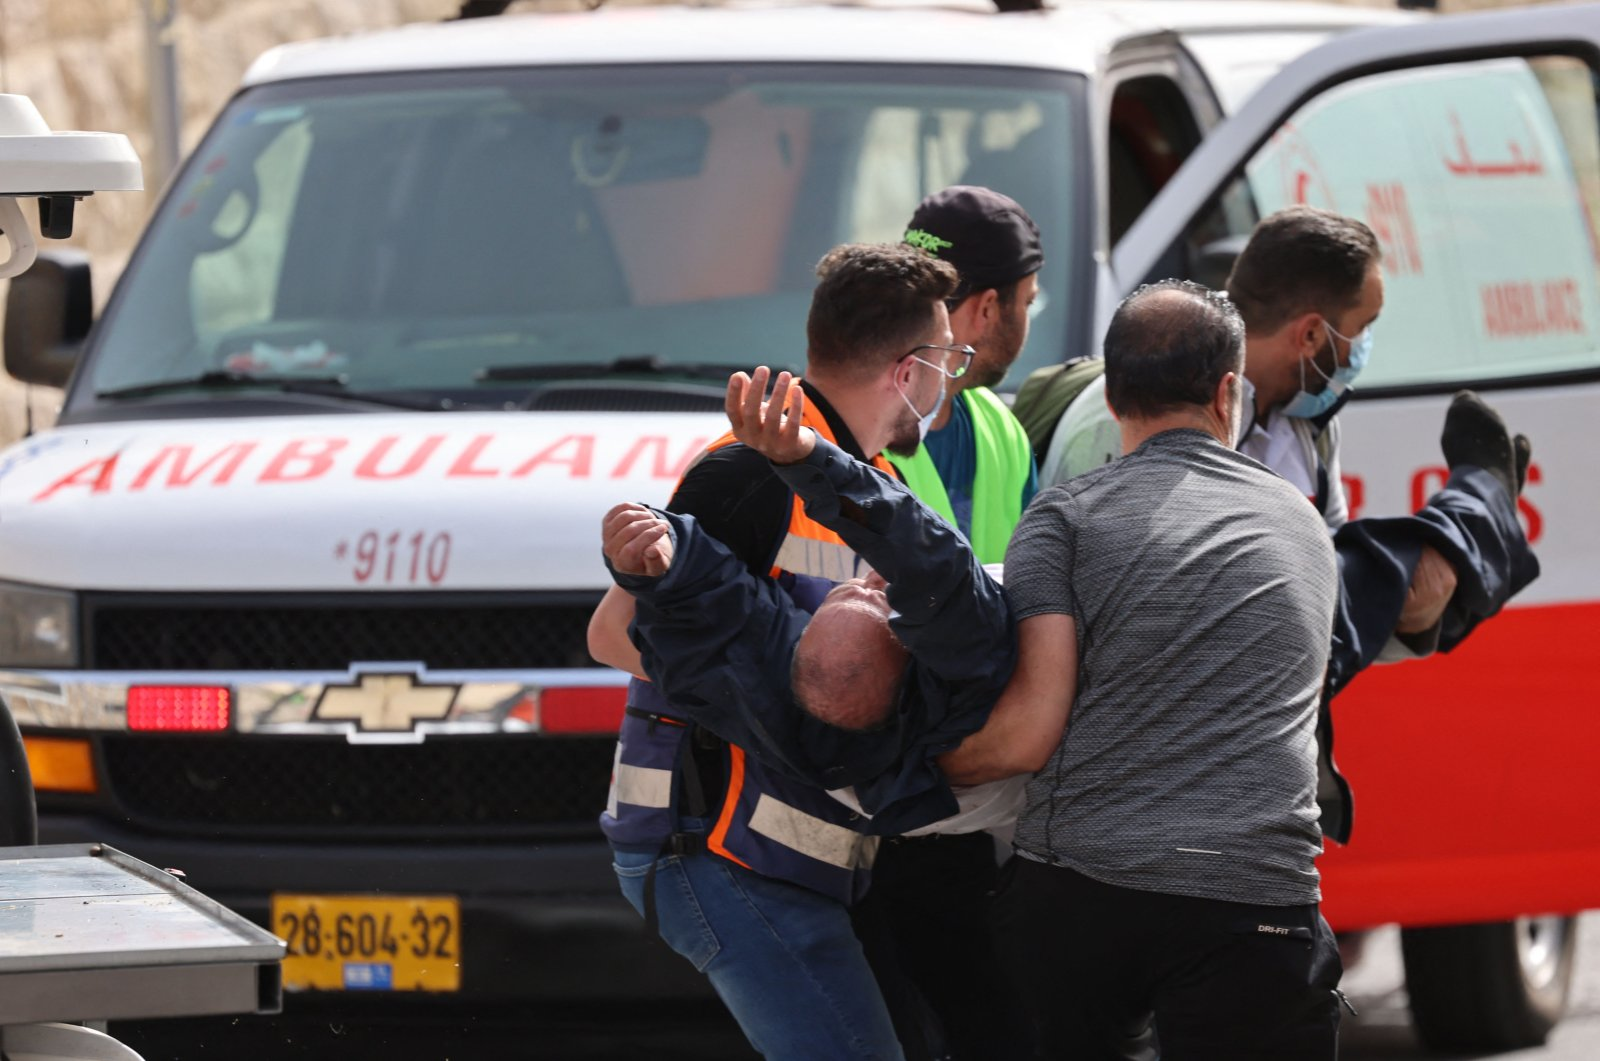 Palestinian medics evacuate a wounded protester after Israeli security forces attacked them at the Damascus Gate in Jerusalem's Old City on May 10, 2021, ahead of a planned march to commemorate Israel's takeover of Jerusalem in the 1967 Six-Day War. (AFP Photo)